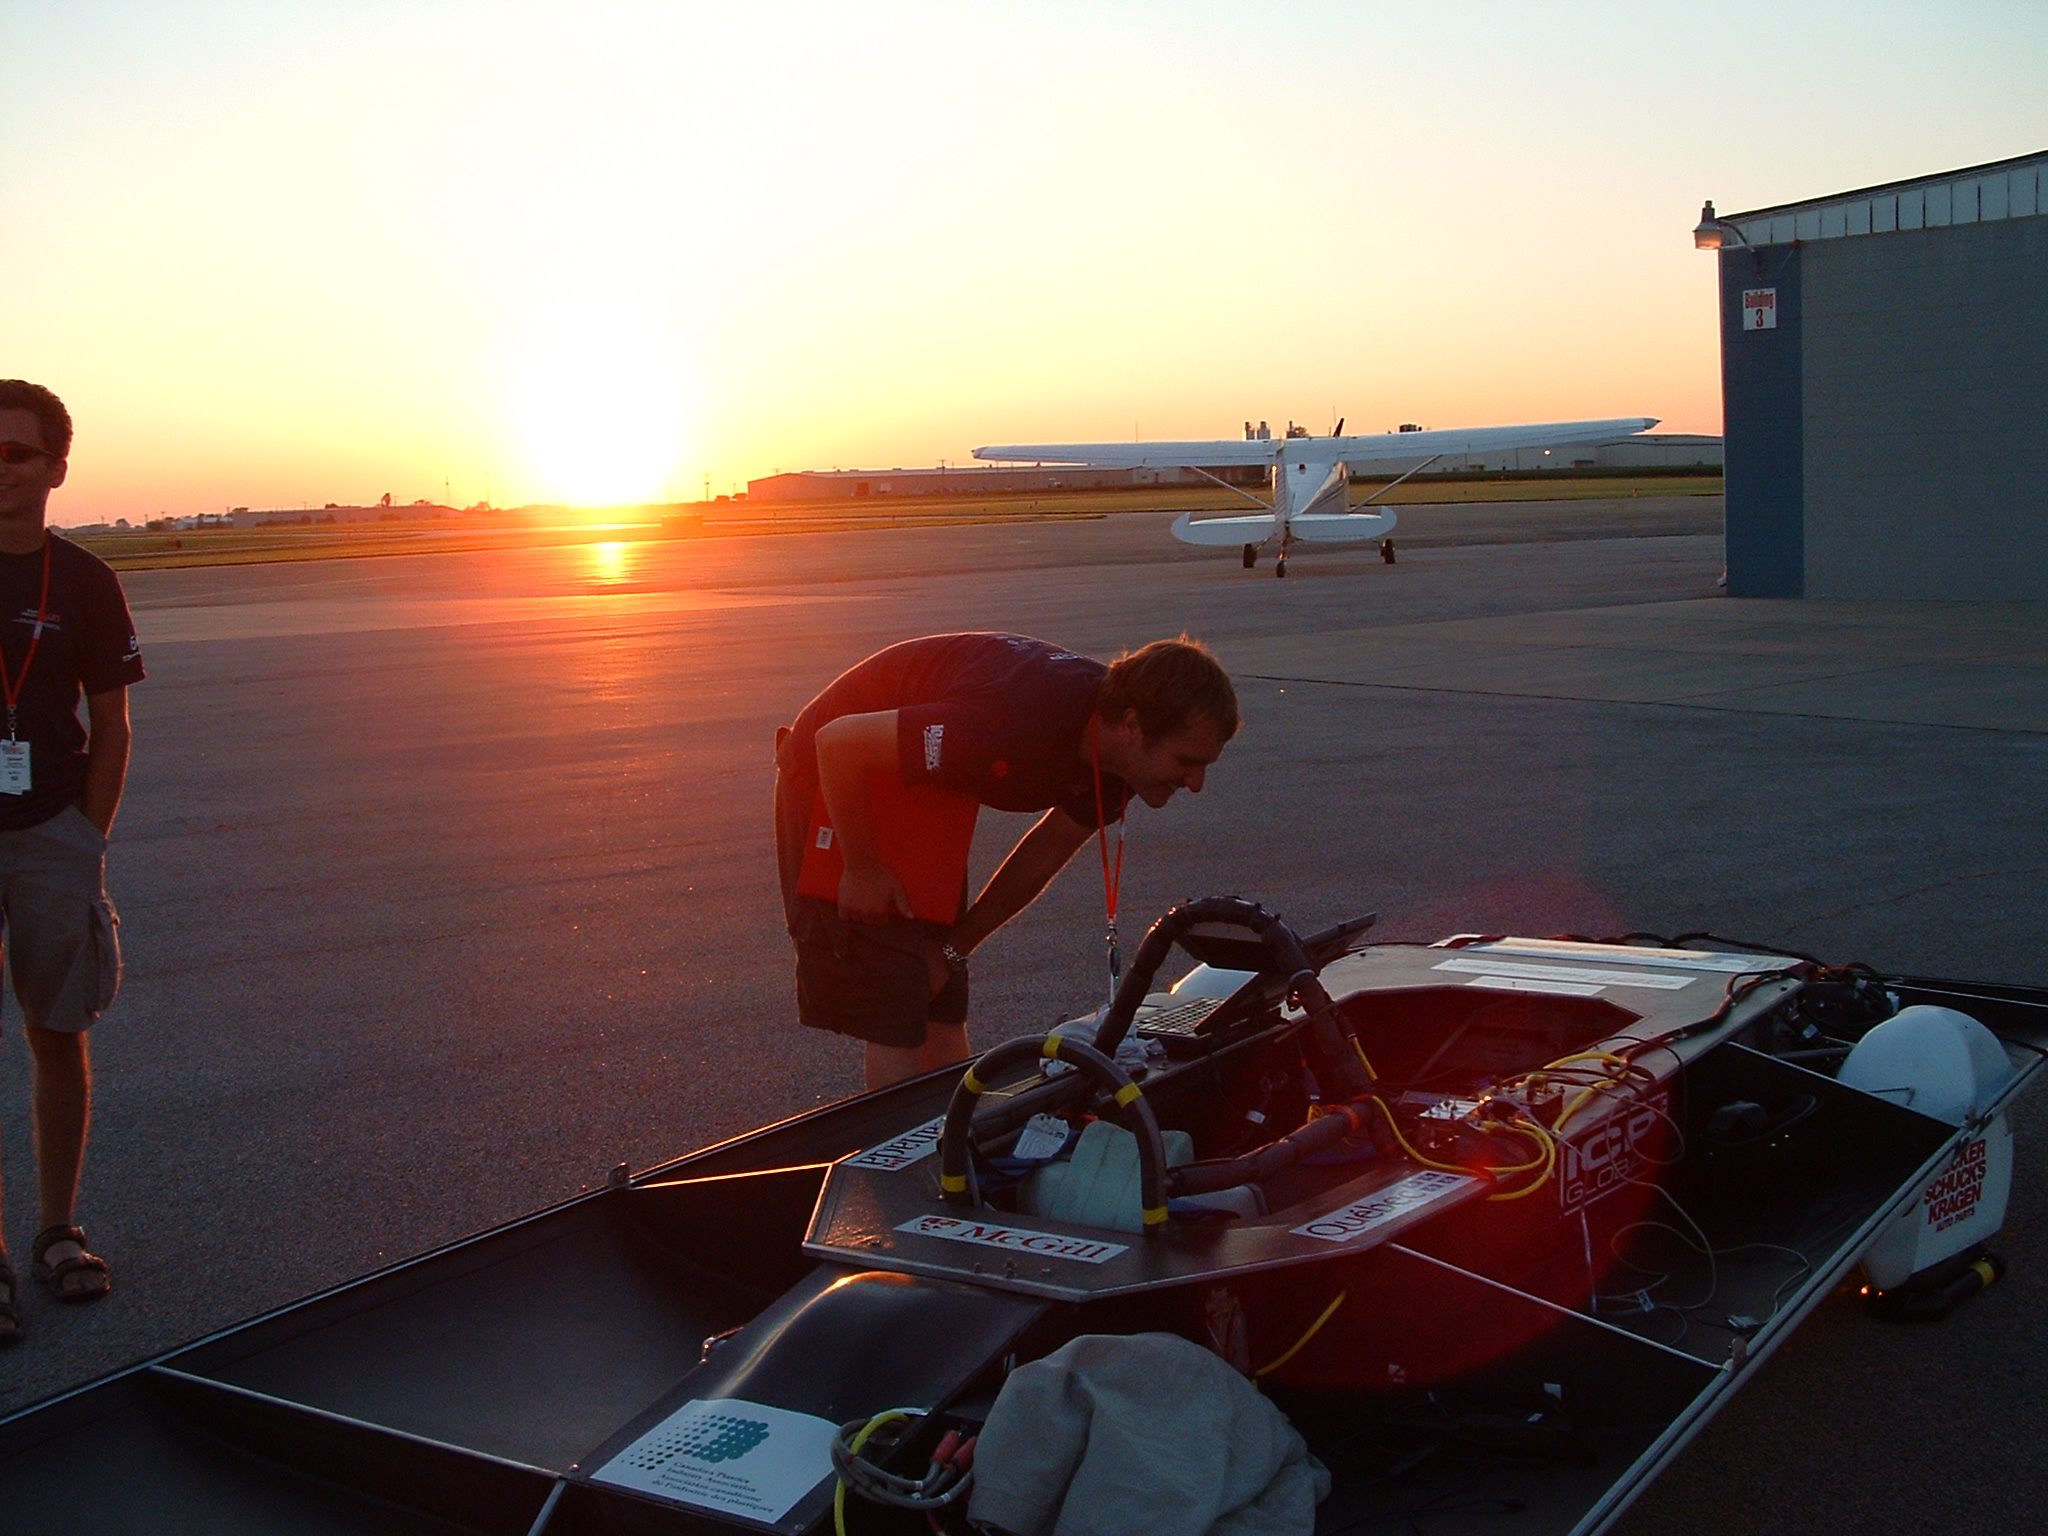 Matt Smith looking over telemetry on the car as Simon looks cool and the sun sets.